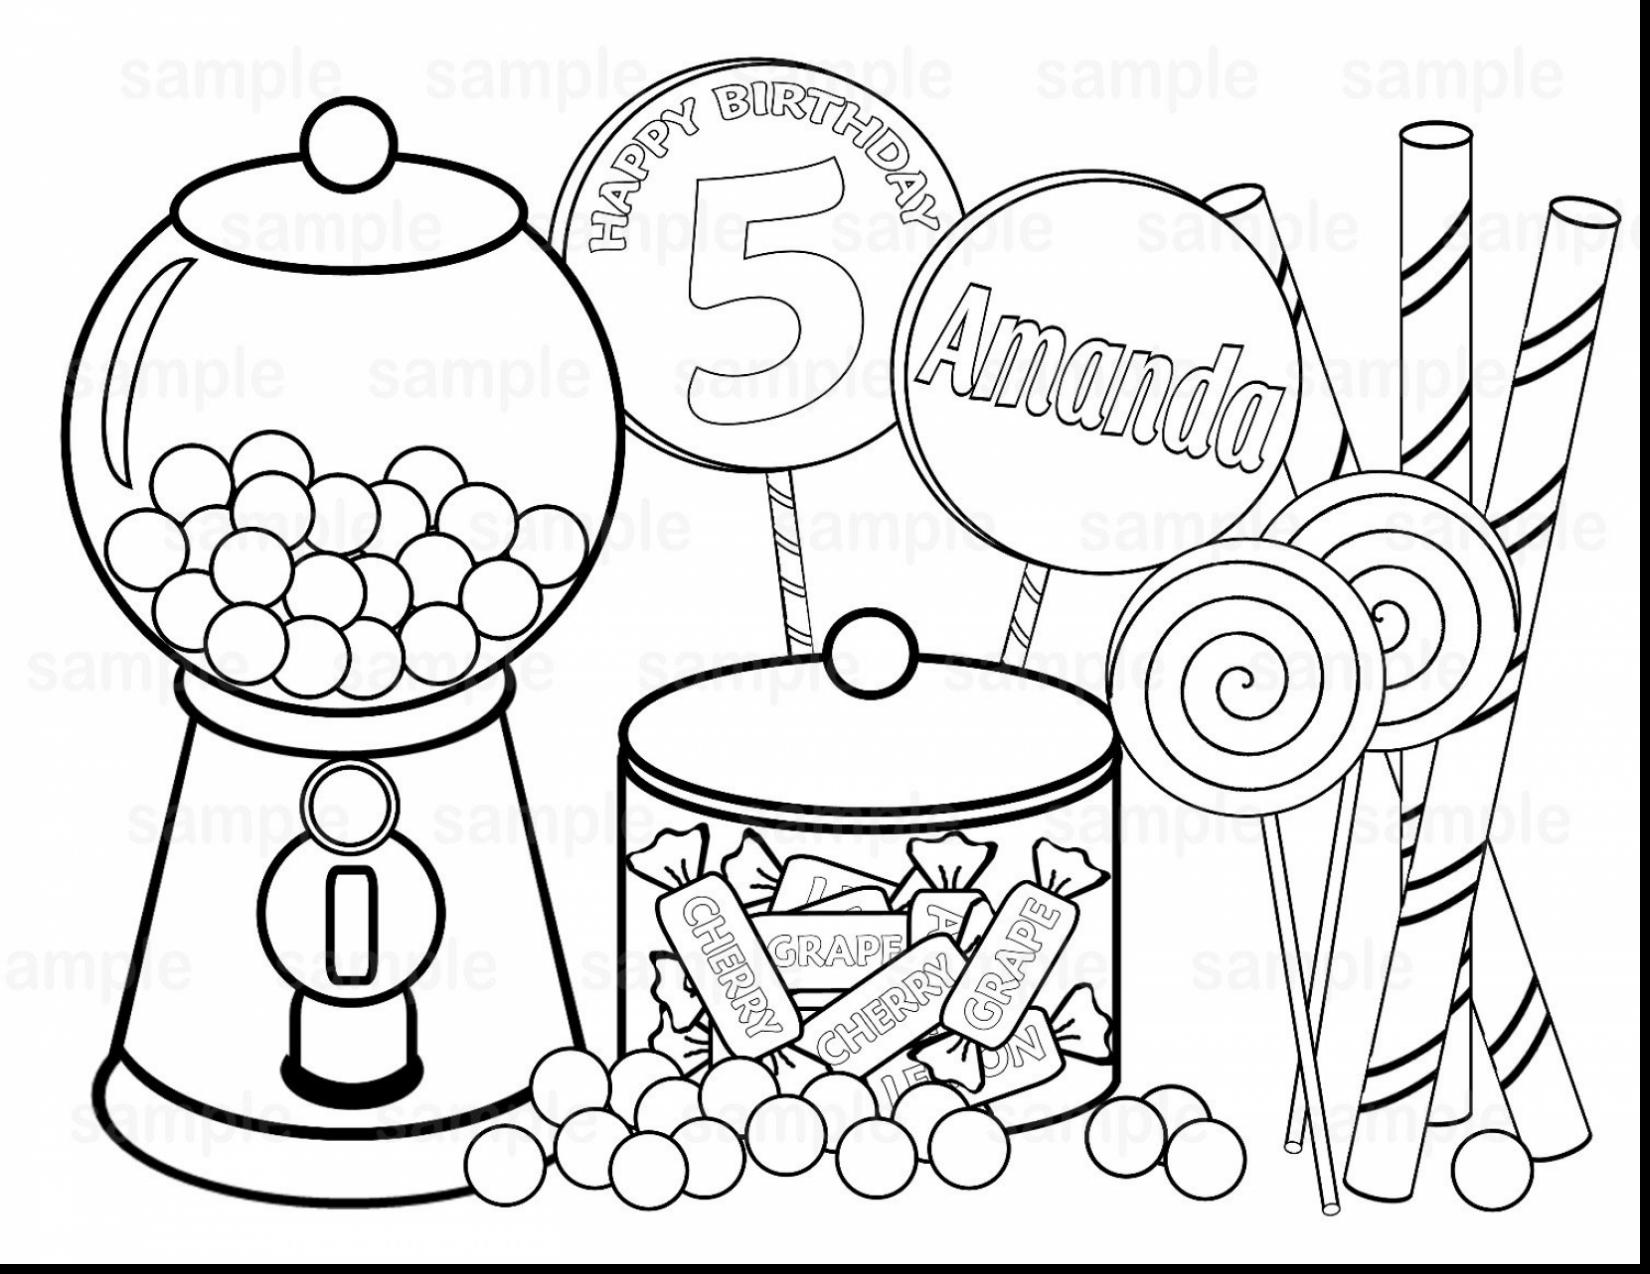 candyland castle coloring pages free - photo#36